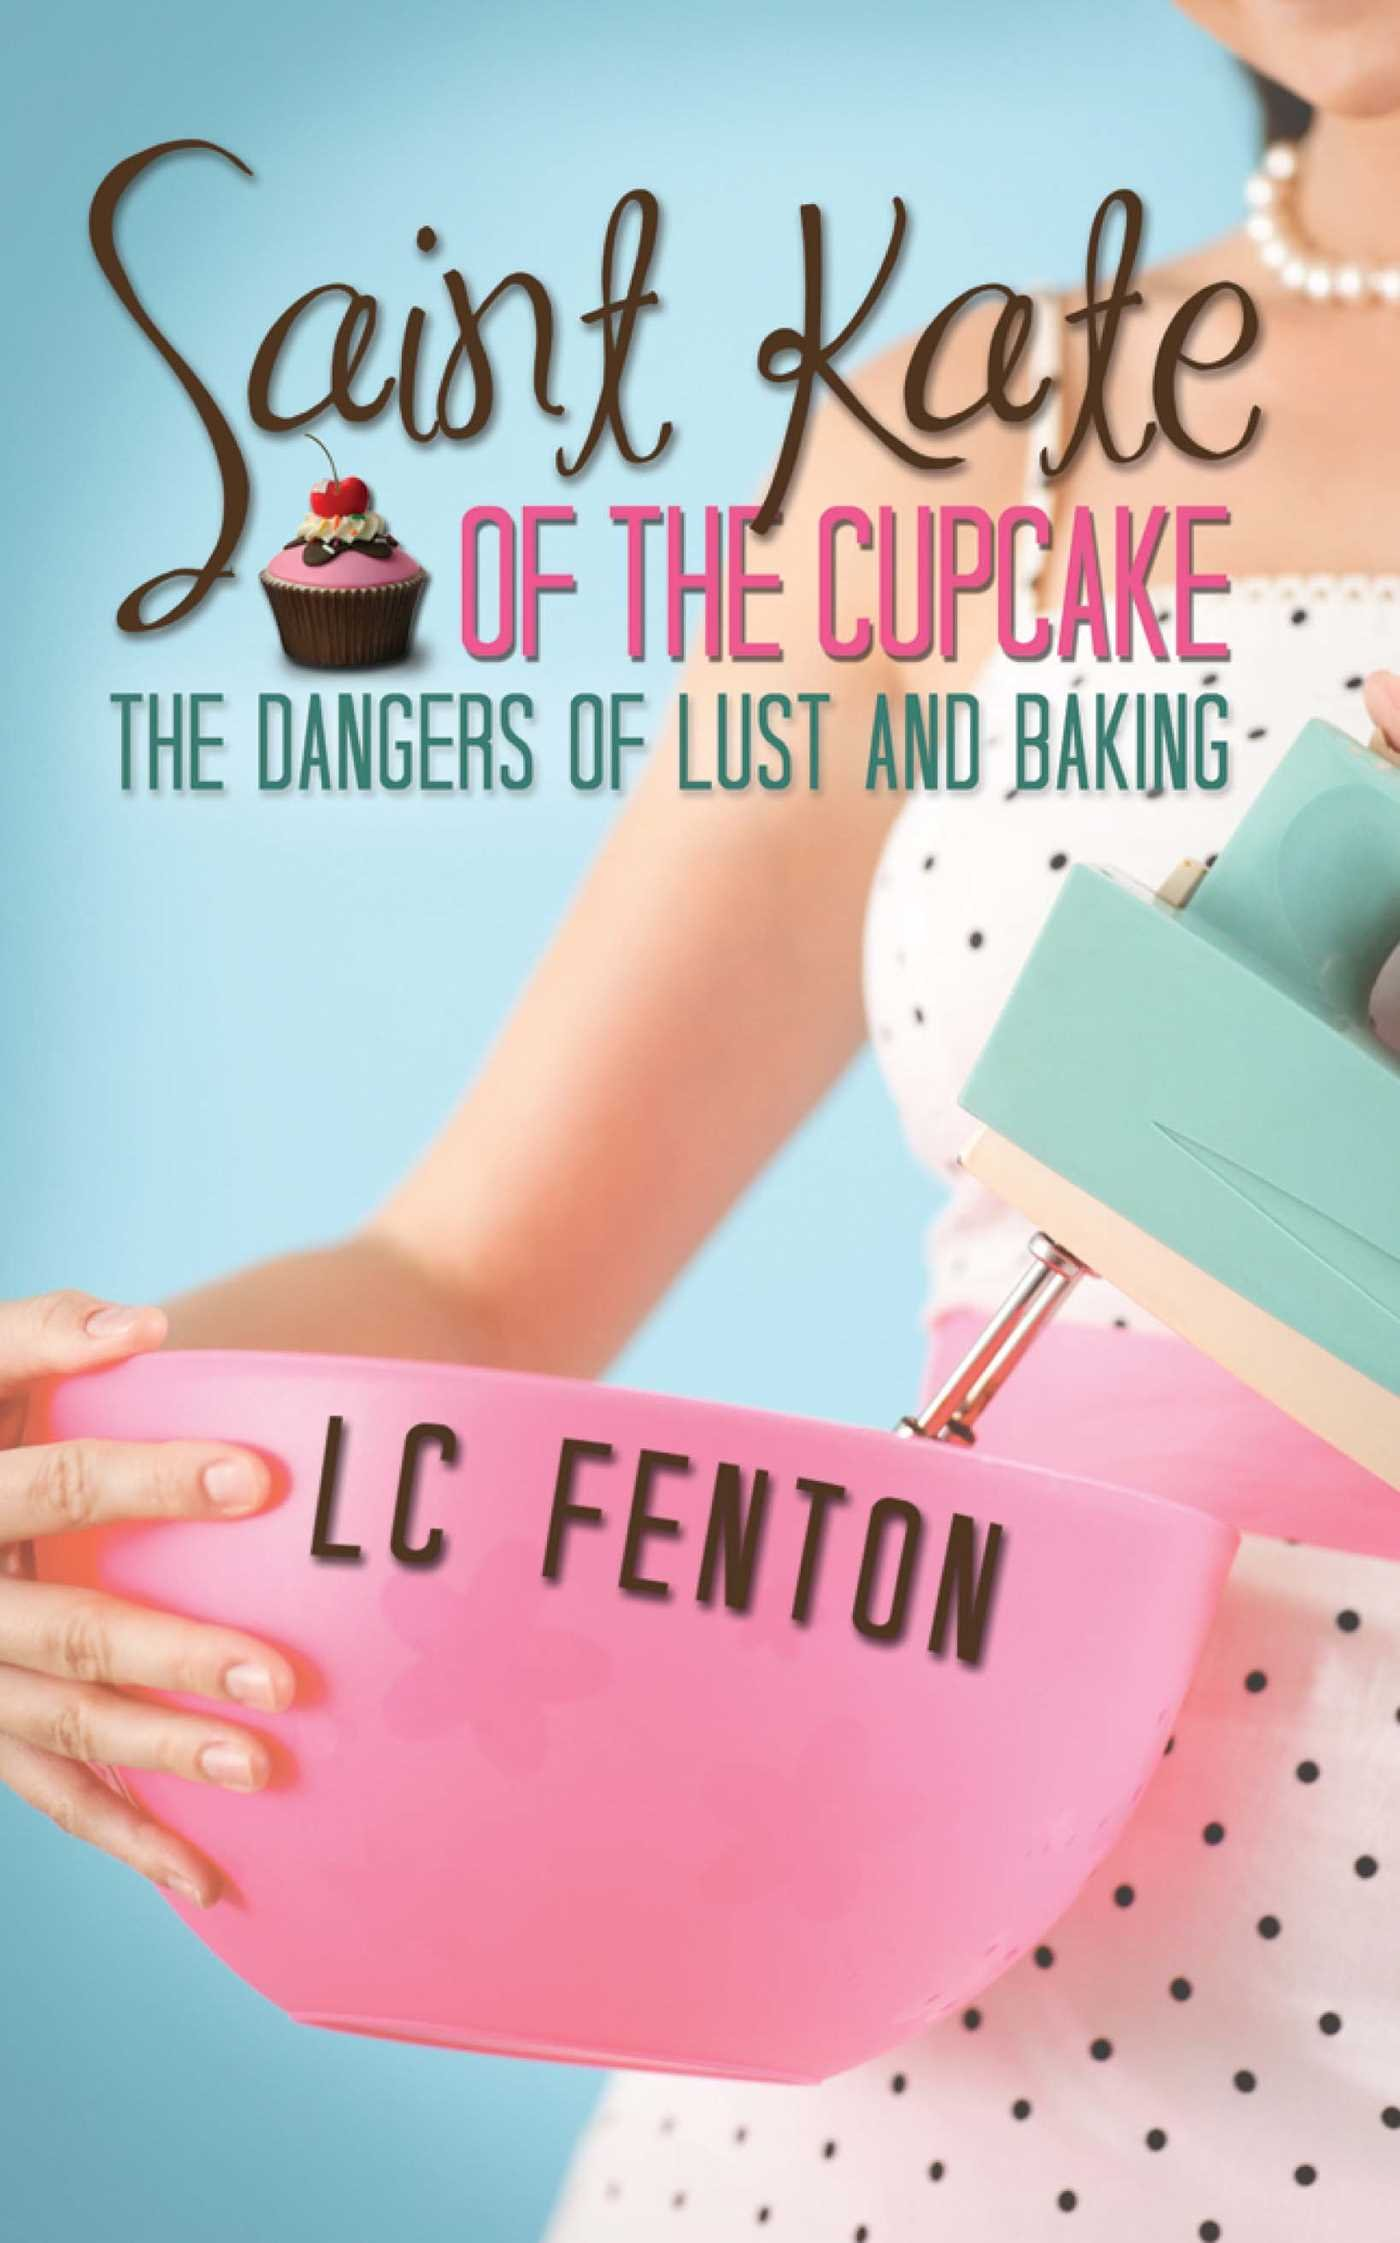 Download St. Kate of the Cupcake: The Dangers of Lust and Baking PDF